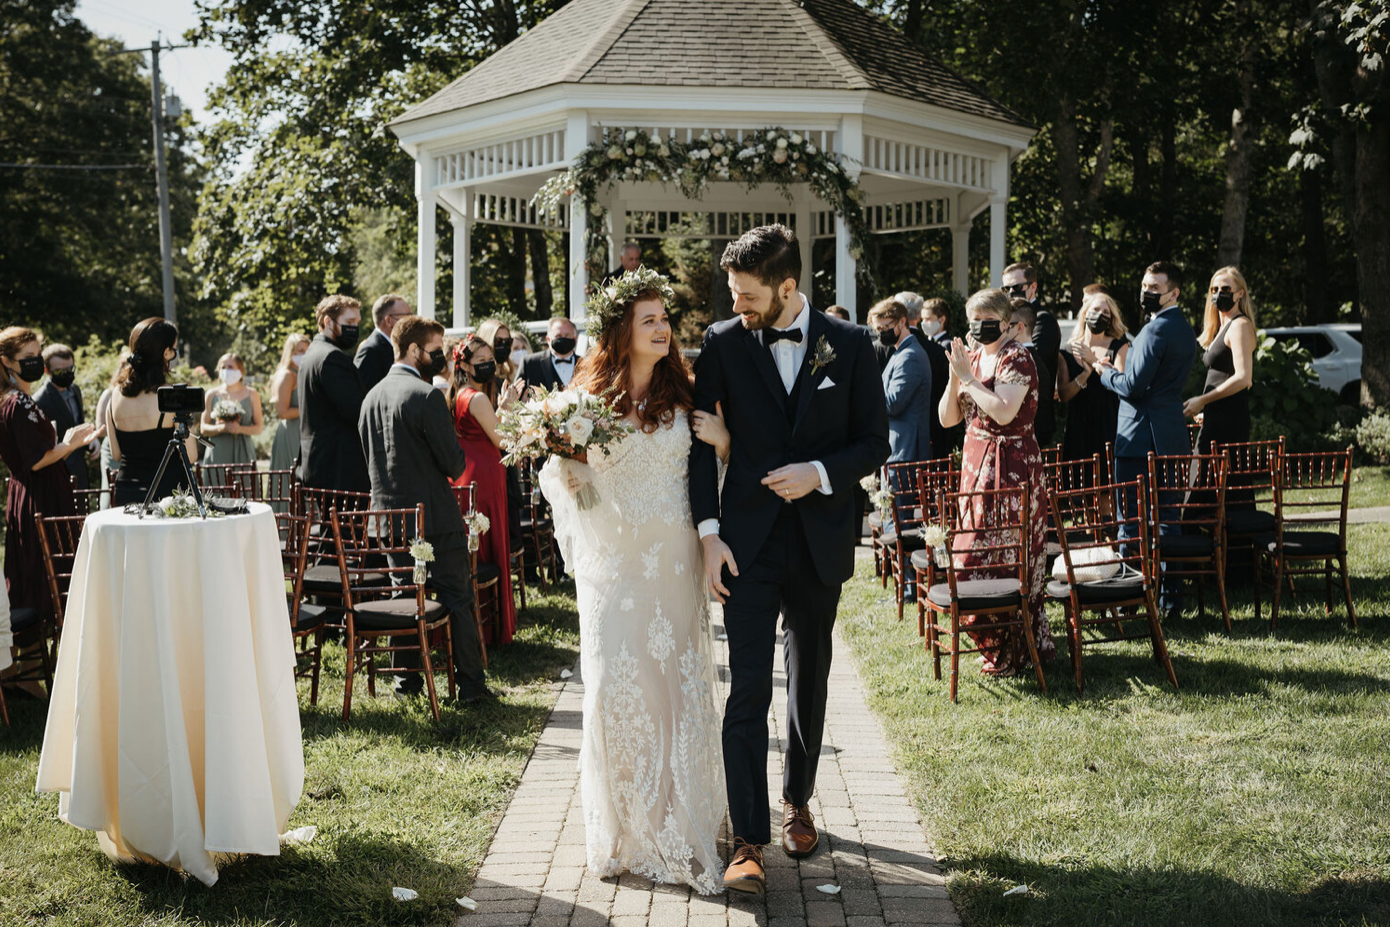 A wedding couple is standing in front of a gazebo and their guests are sitting behind them.